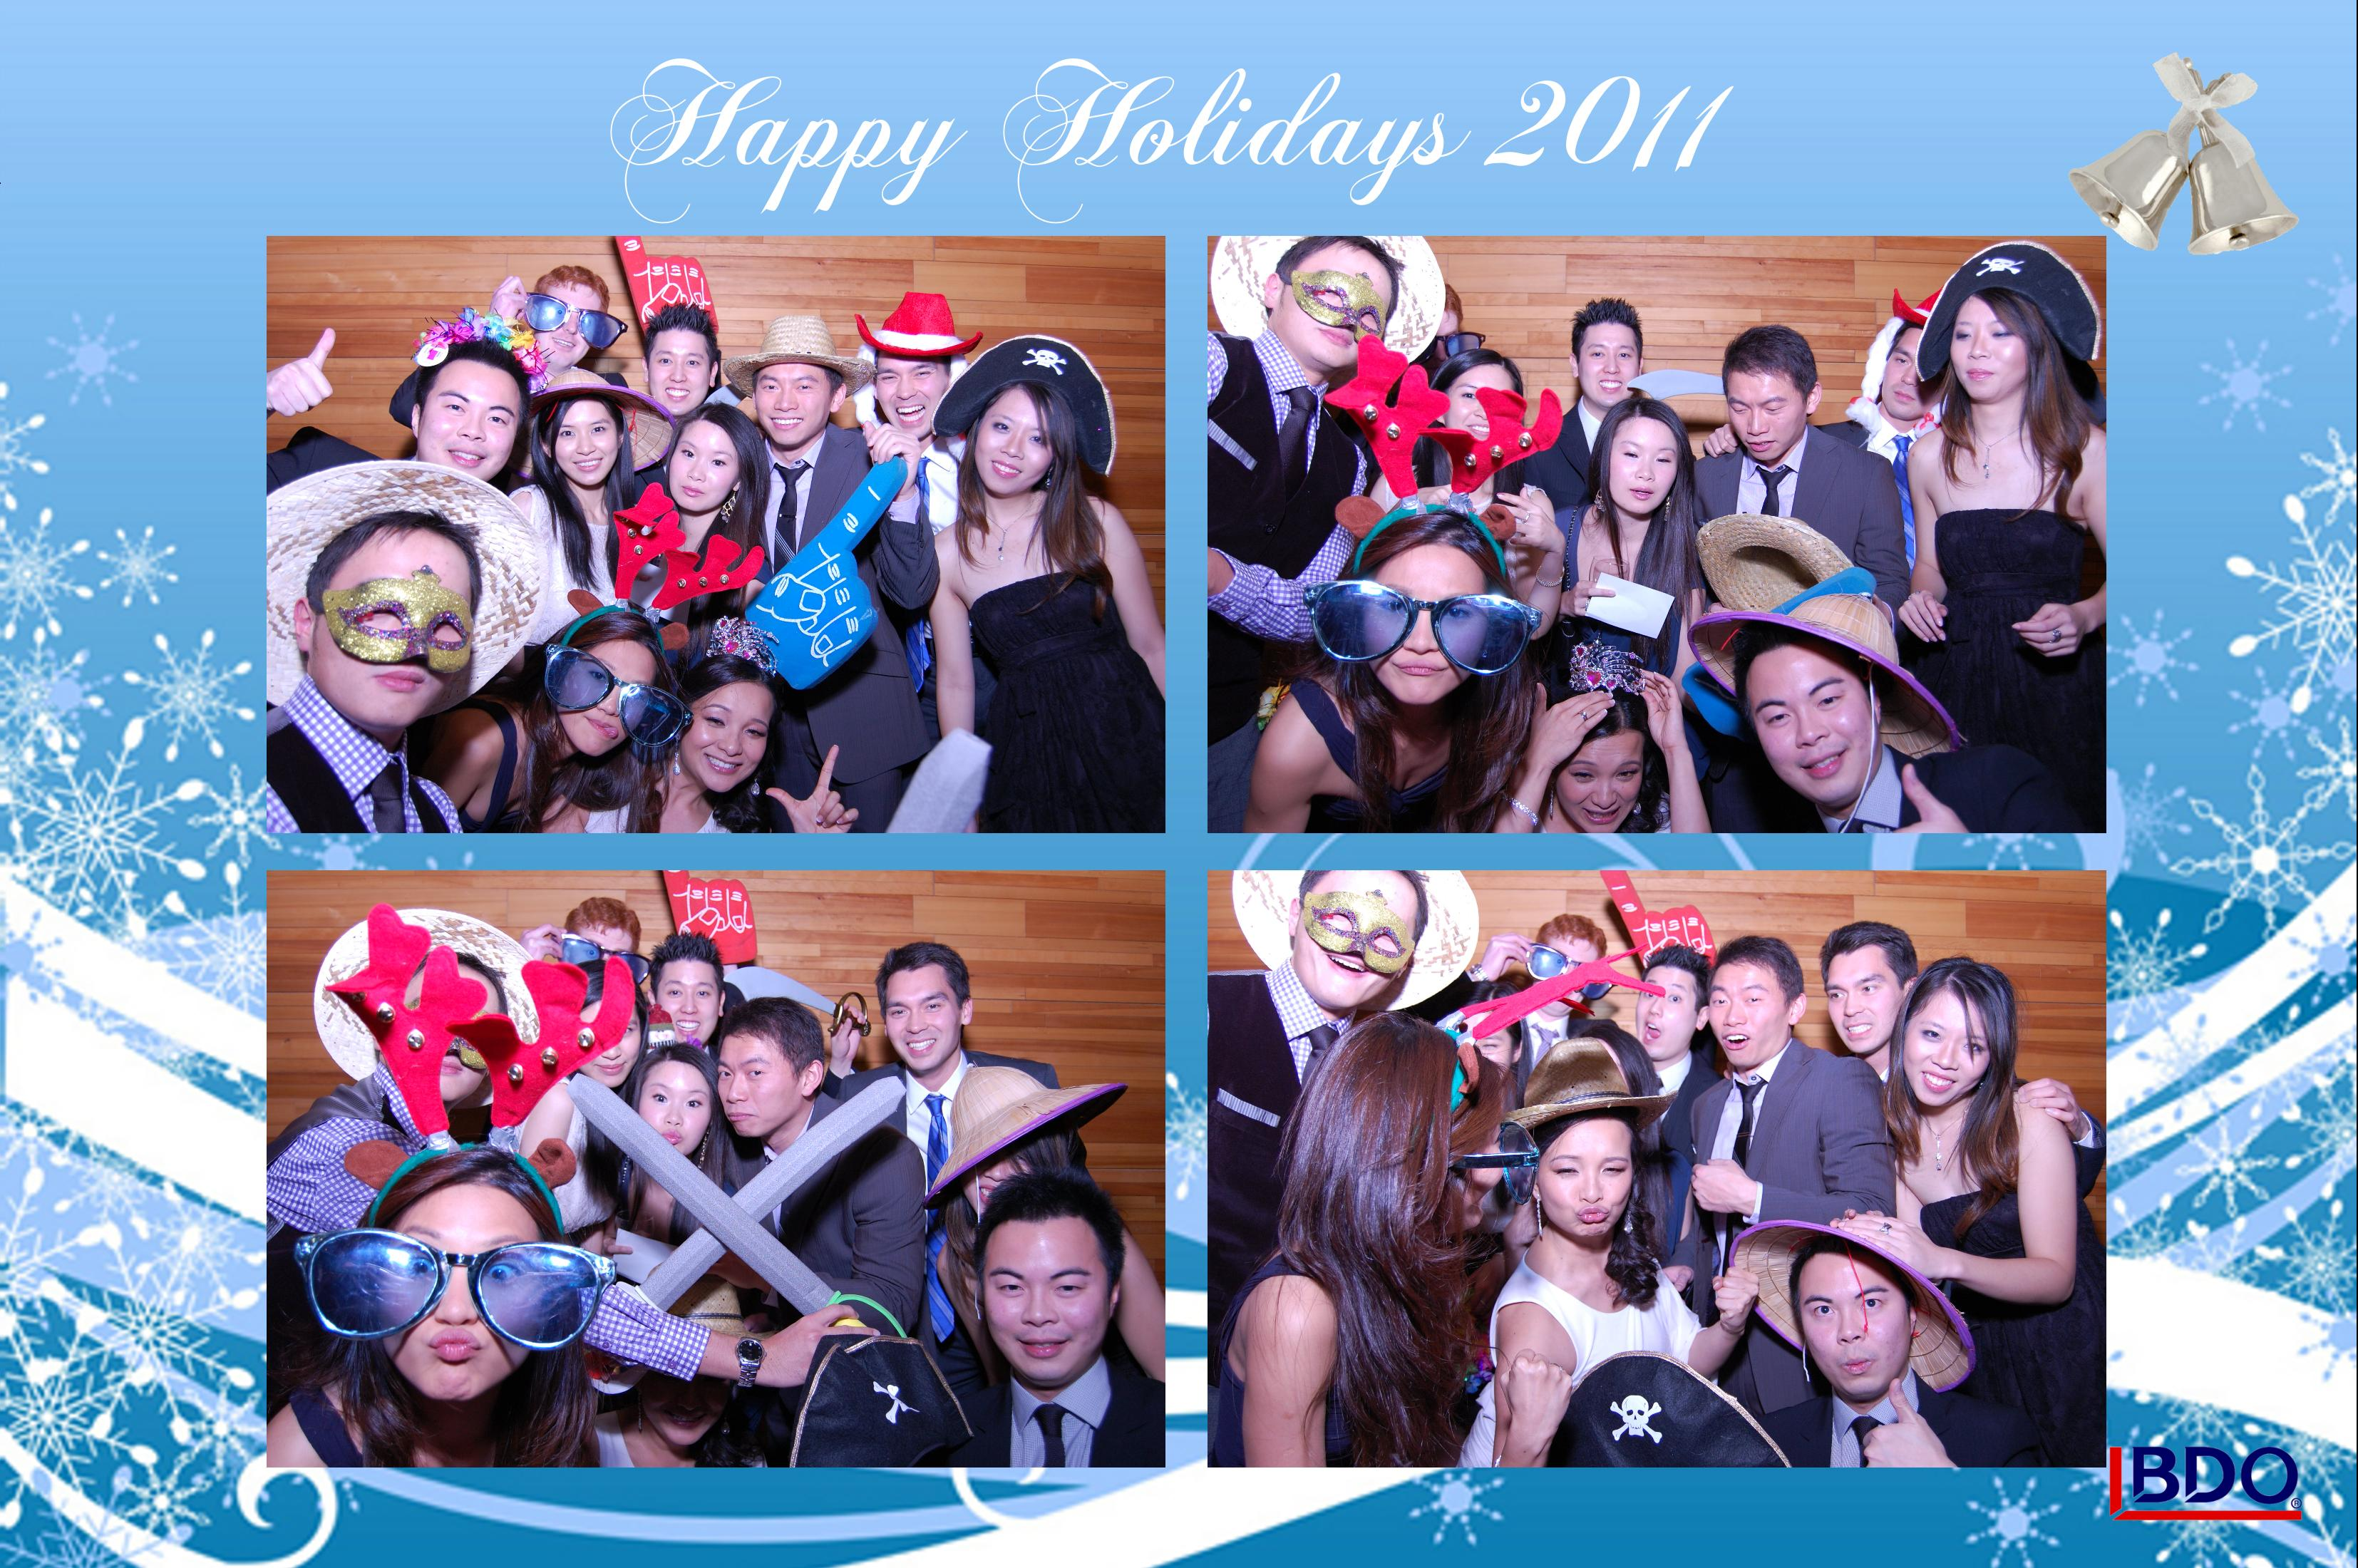 December 3rd, 2011, BDO Holiday Party